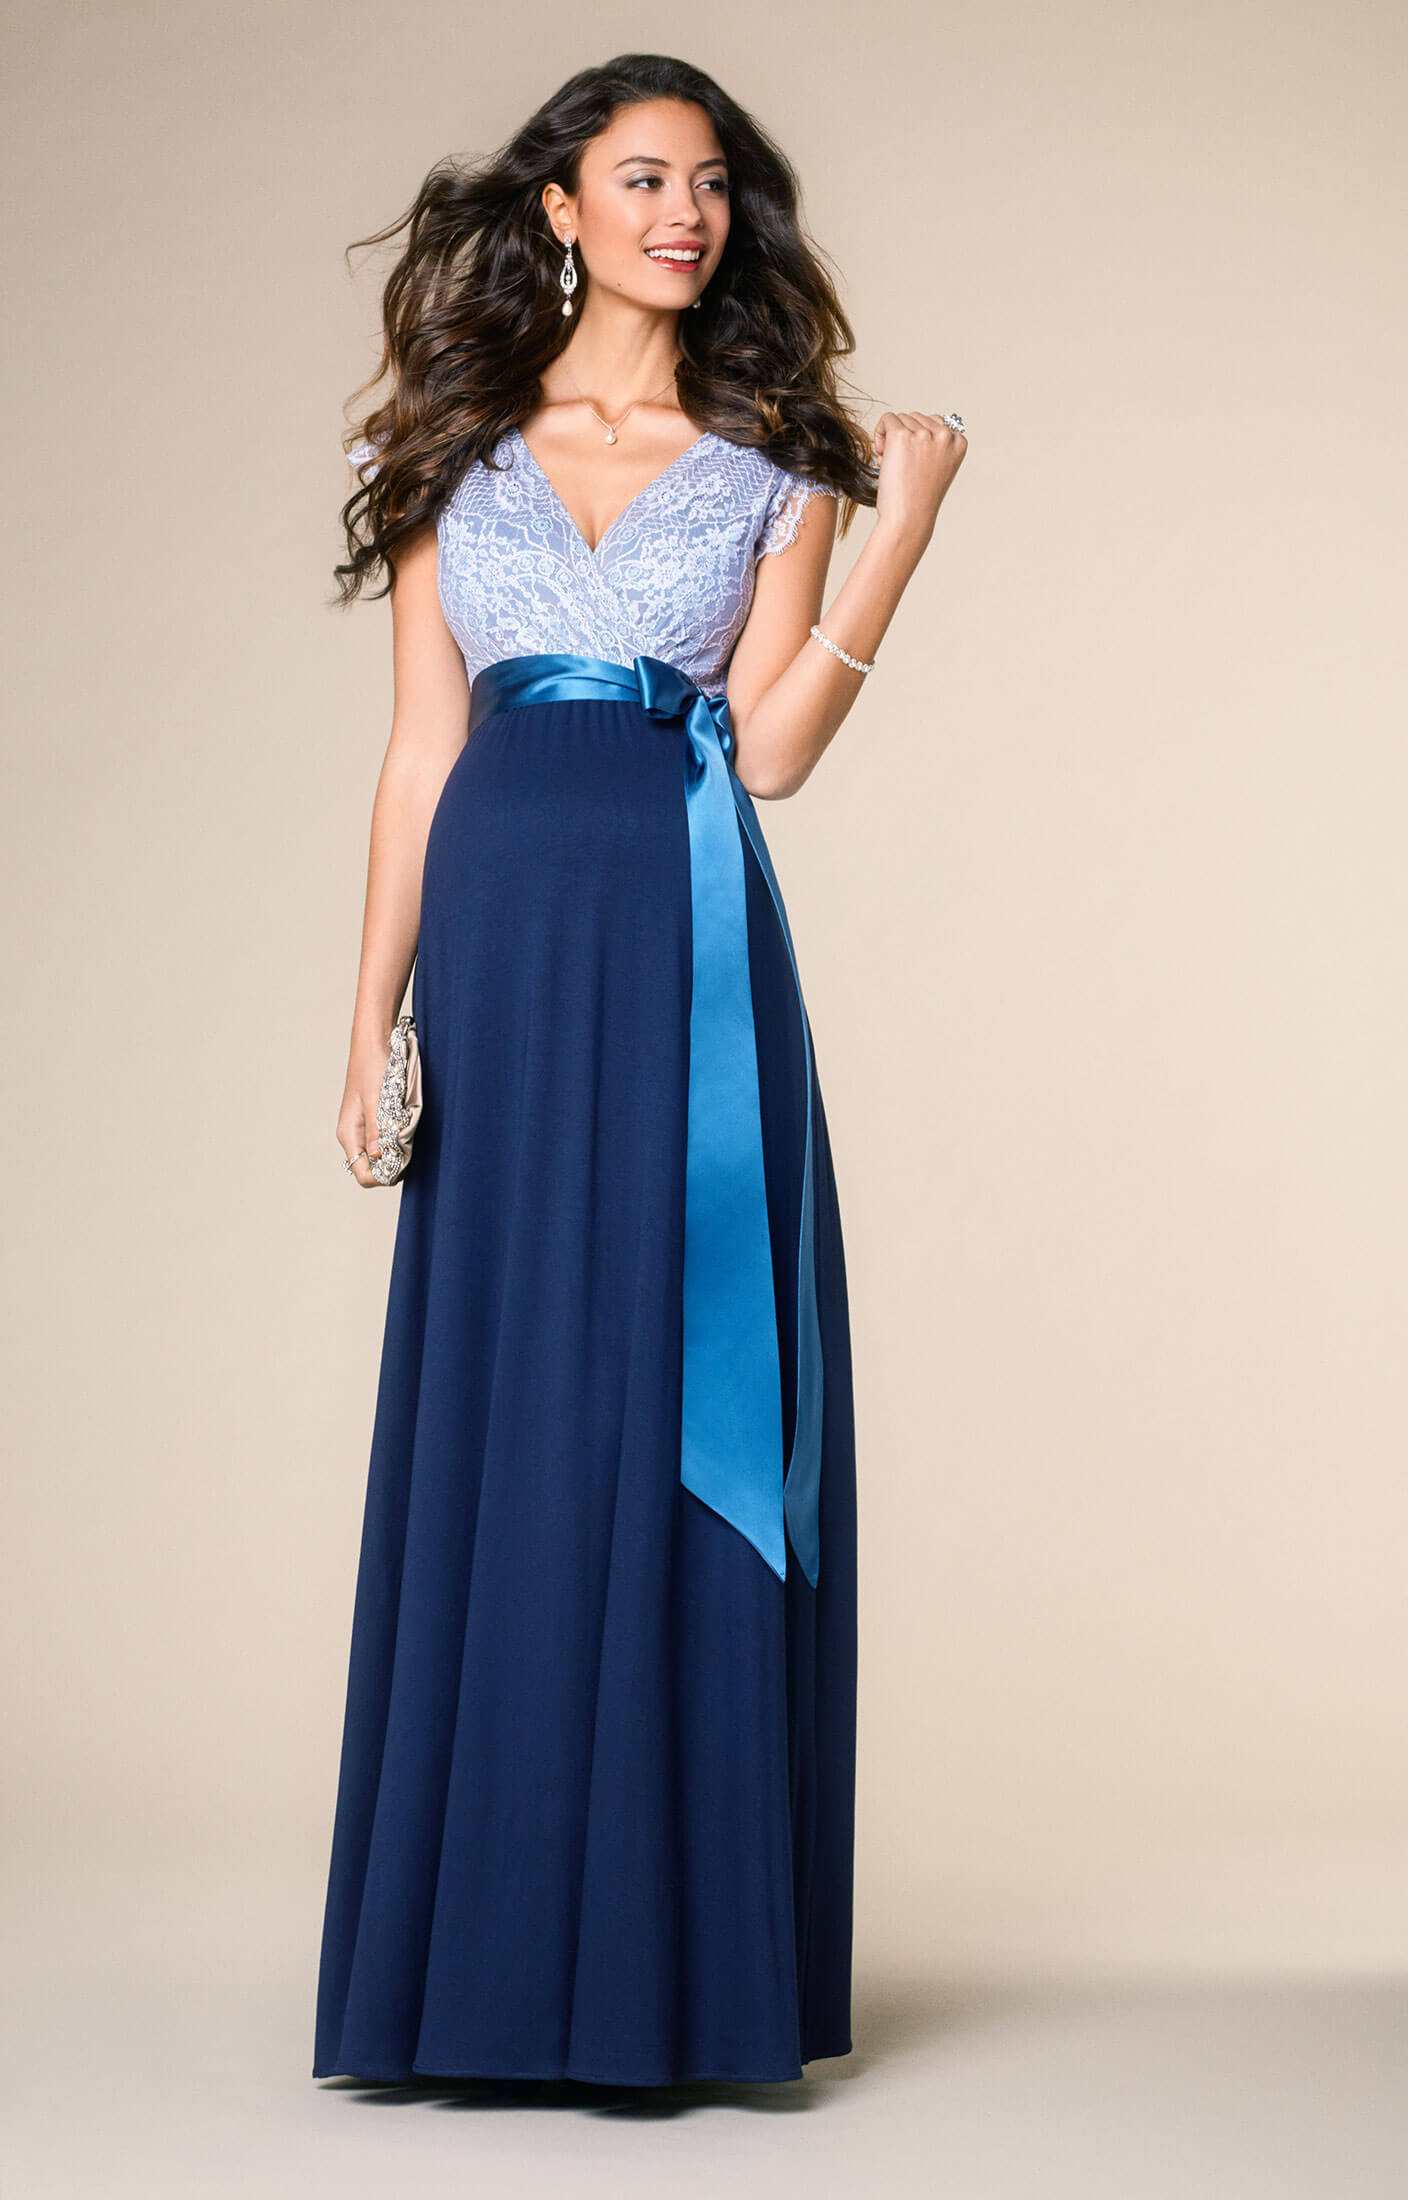 Rosa Maternity Gown Long Infinity Blue Maternity Wedding